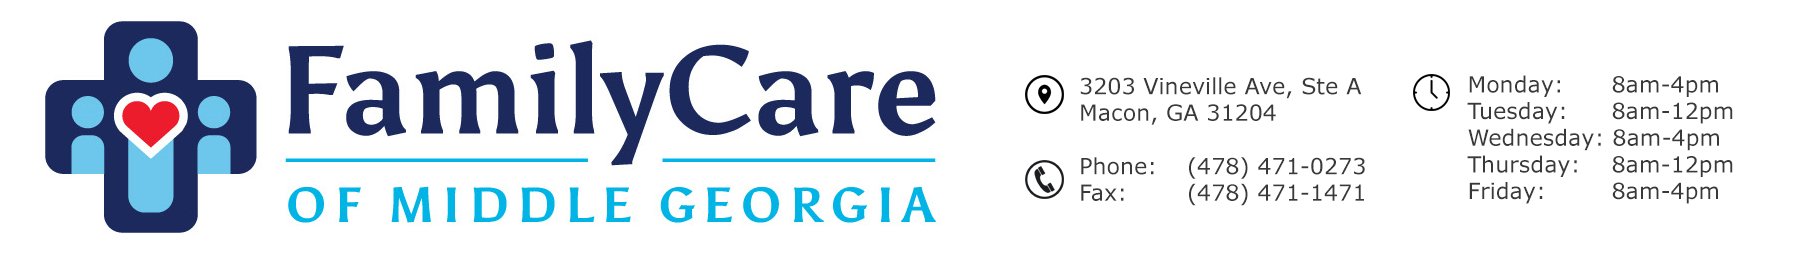 Family Care of Middle Georgia